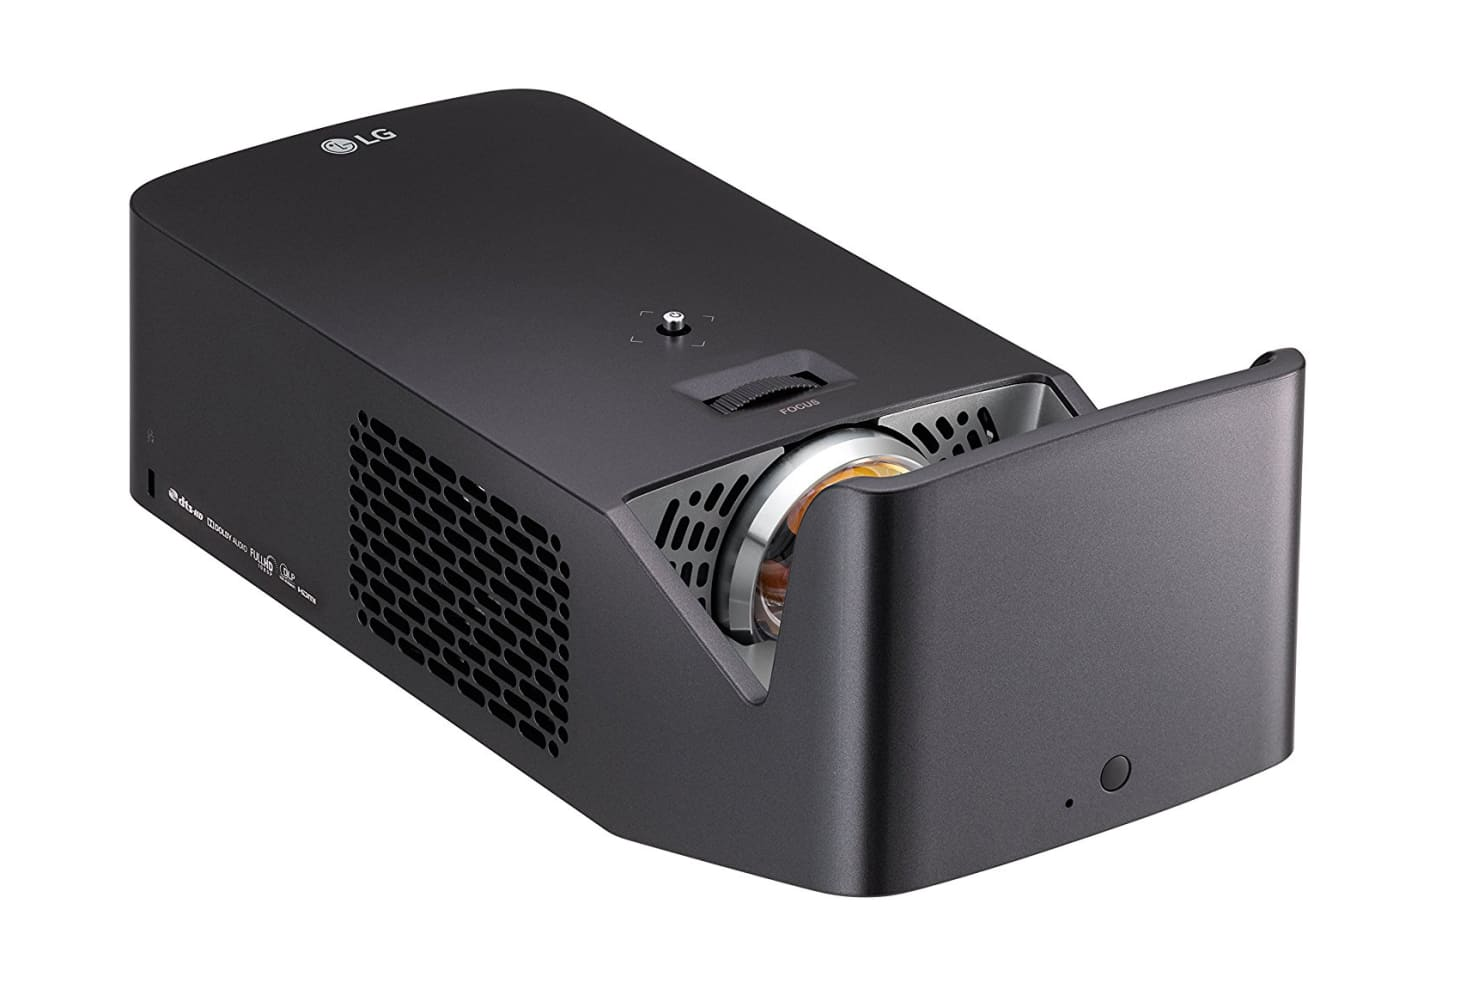 The Everyperson's Guide to Choosing a Home Projector